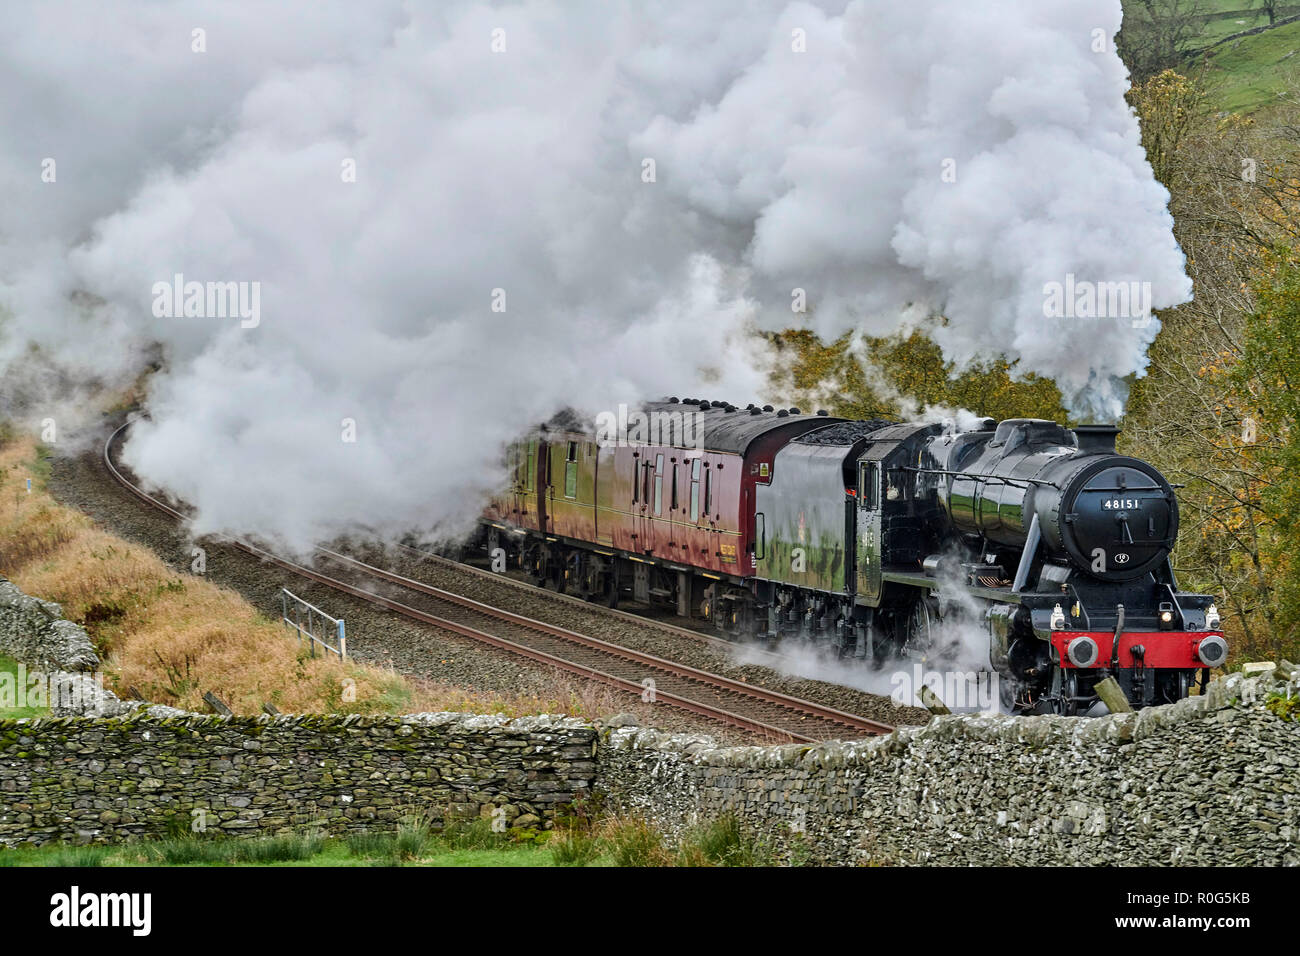 Preserved steam hauled train on the Settle & Carlisle Railway line, Yorkshire Dales National Park, Northern England, UK - Stock Image